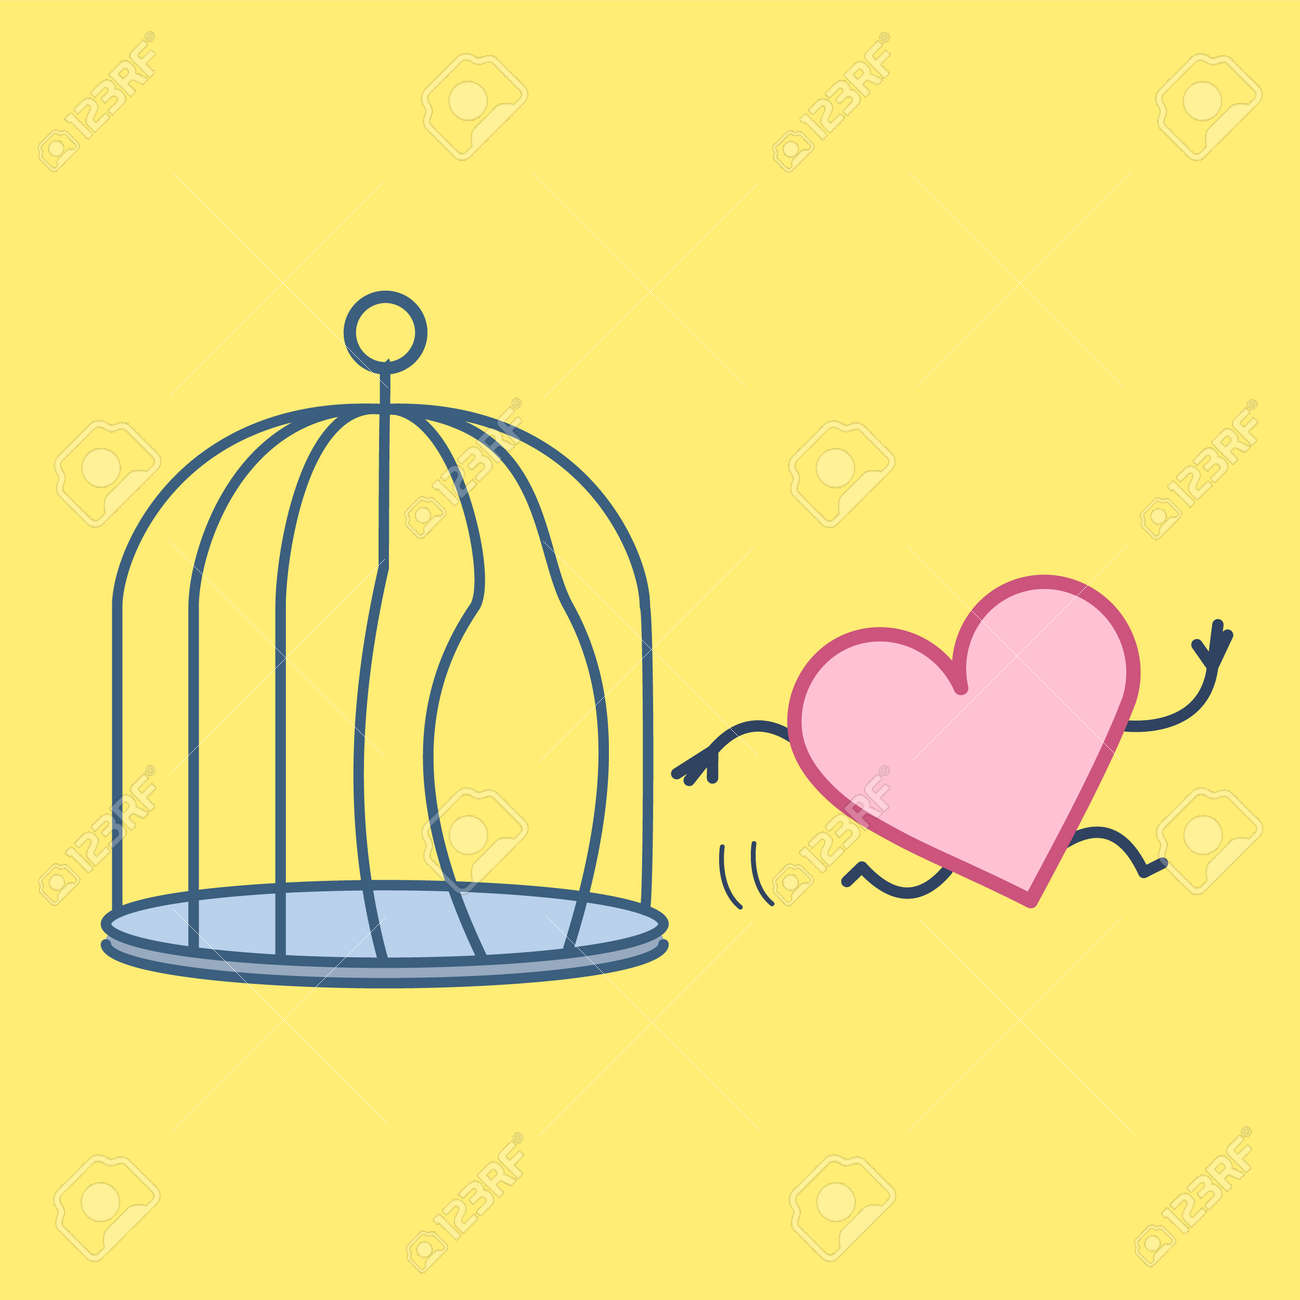 Heart escaping out of the bird cage. Vector concept illustration of free heart and soul running out of the prison | flat design linear infographic icon on yellow background - 110431236